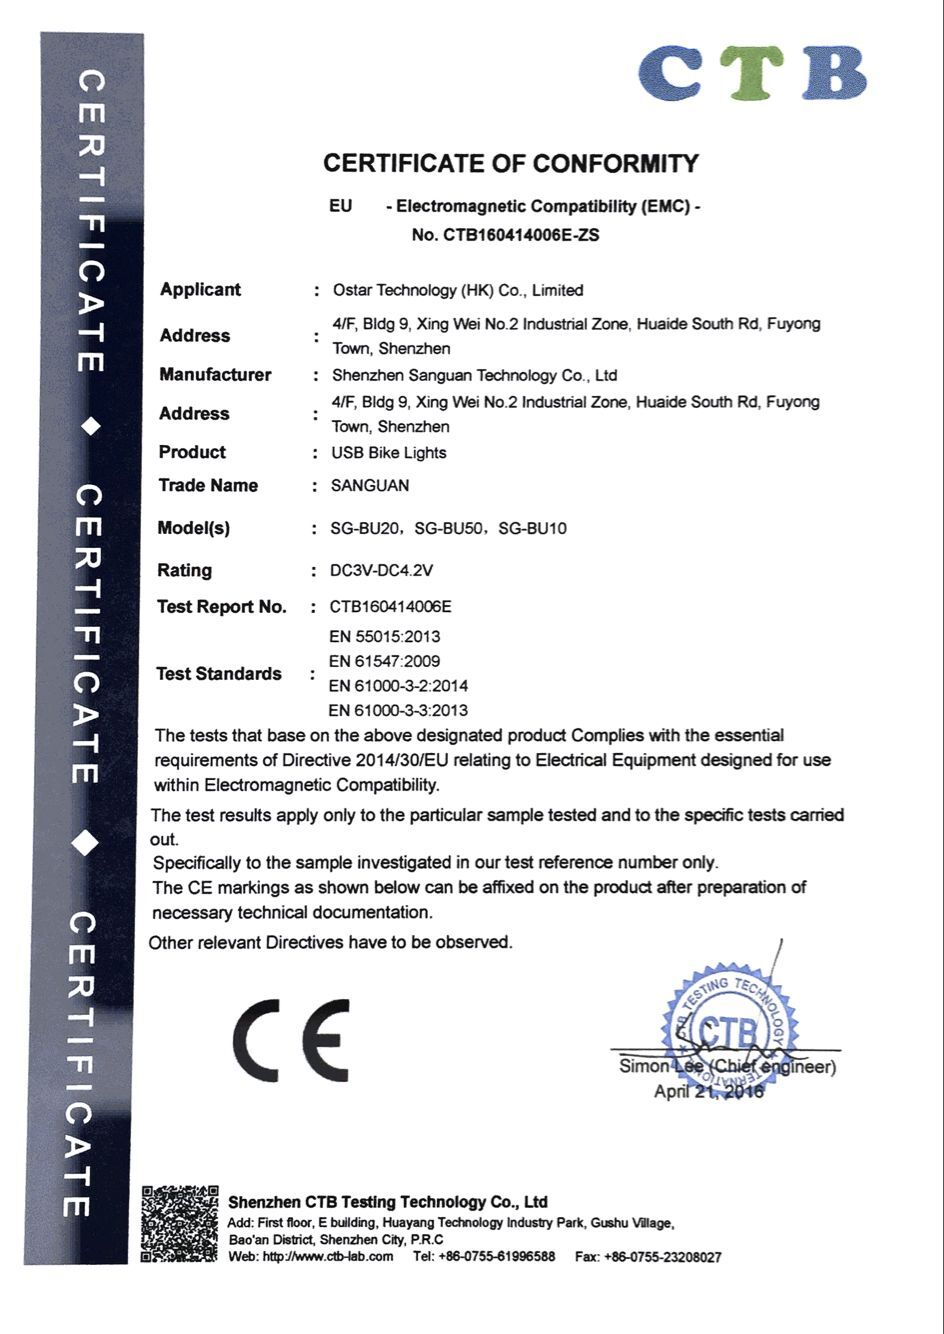 The certifications of LED bike light manufacturer